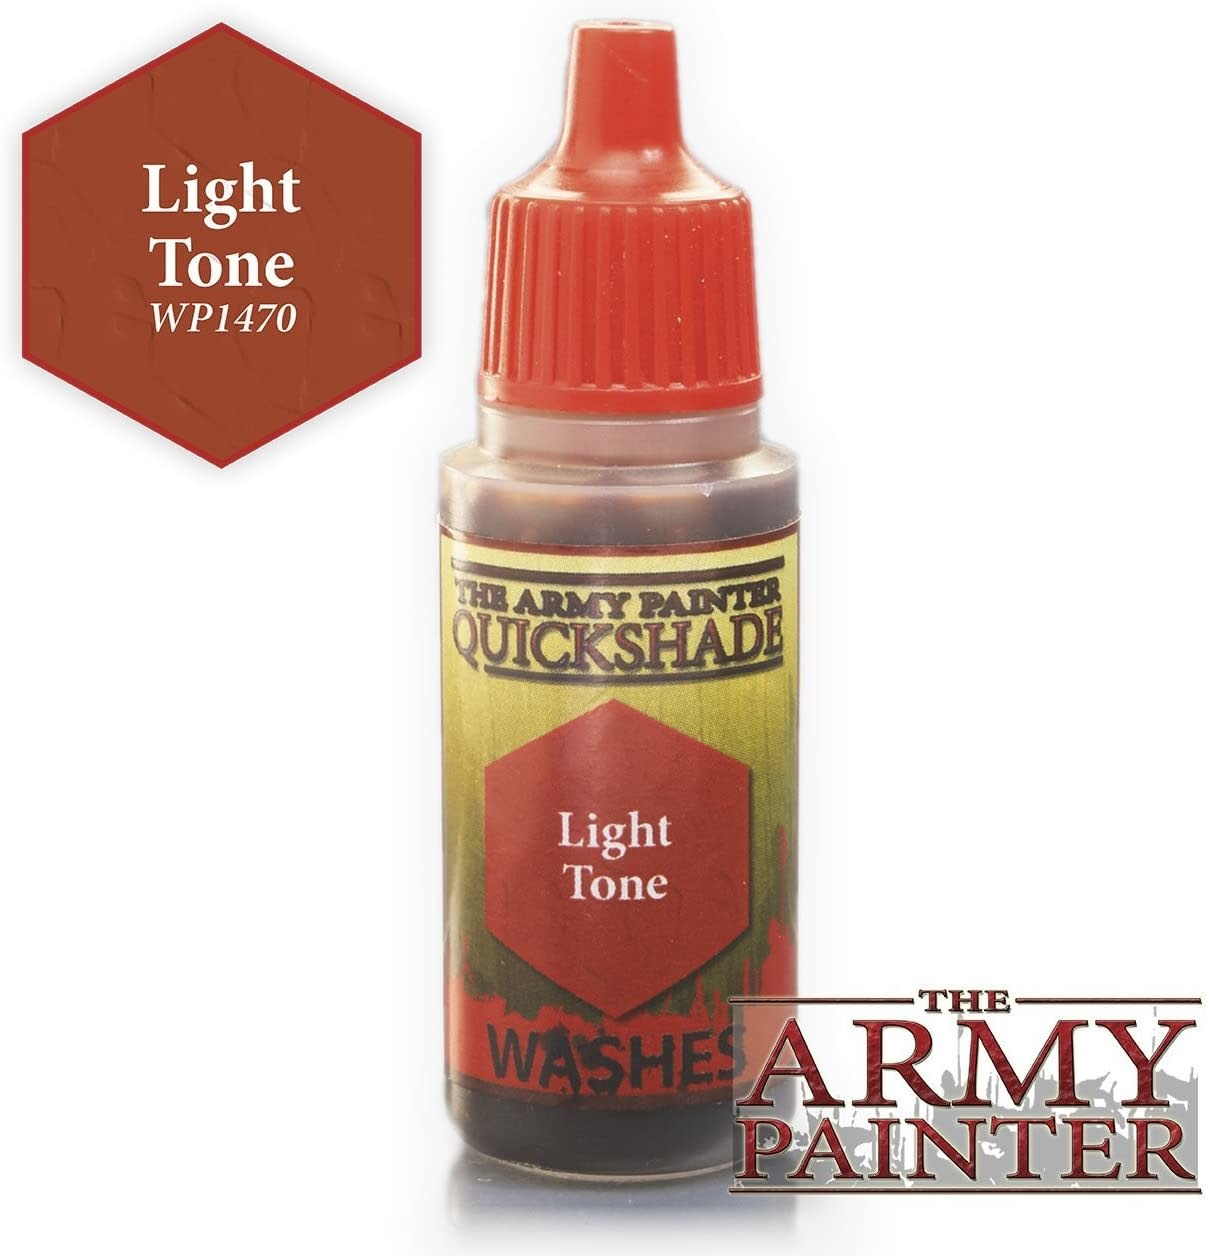 Army Painter Paint 18Ml. Light Tone